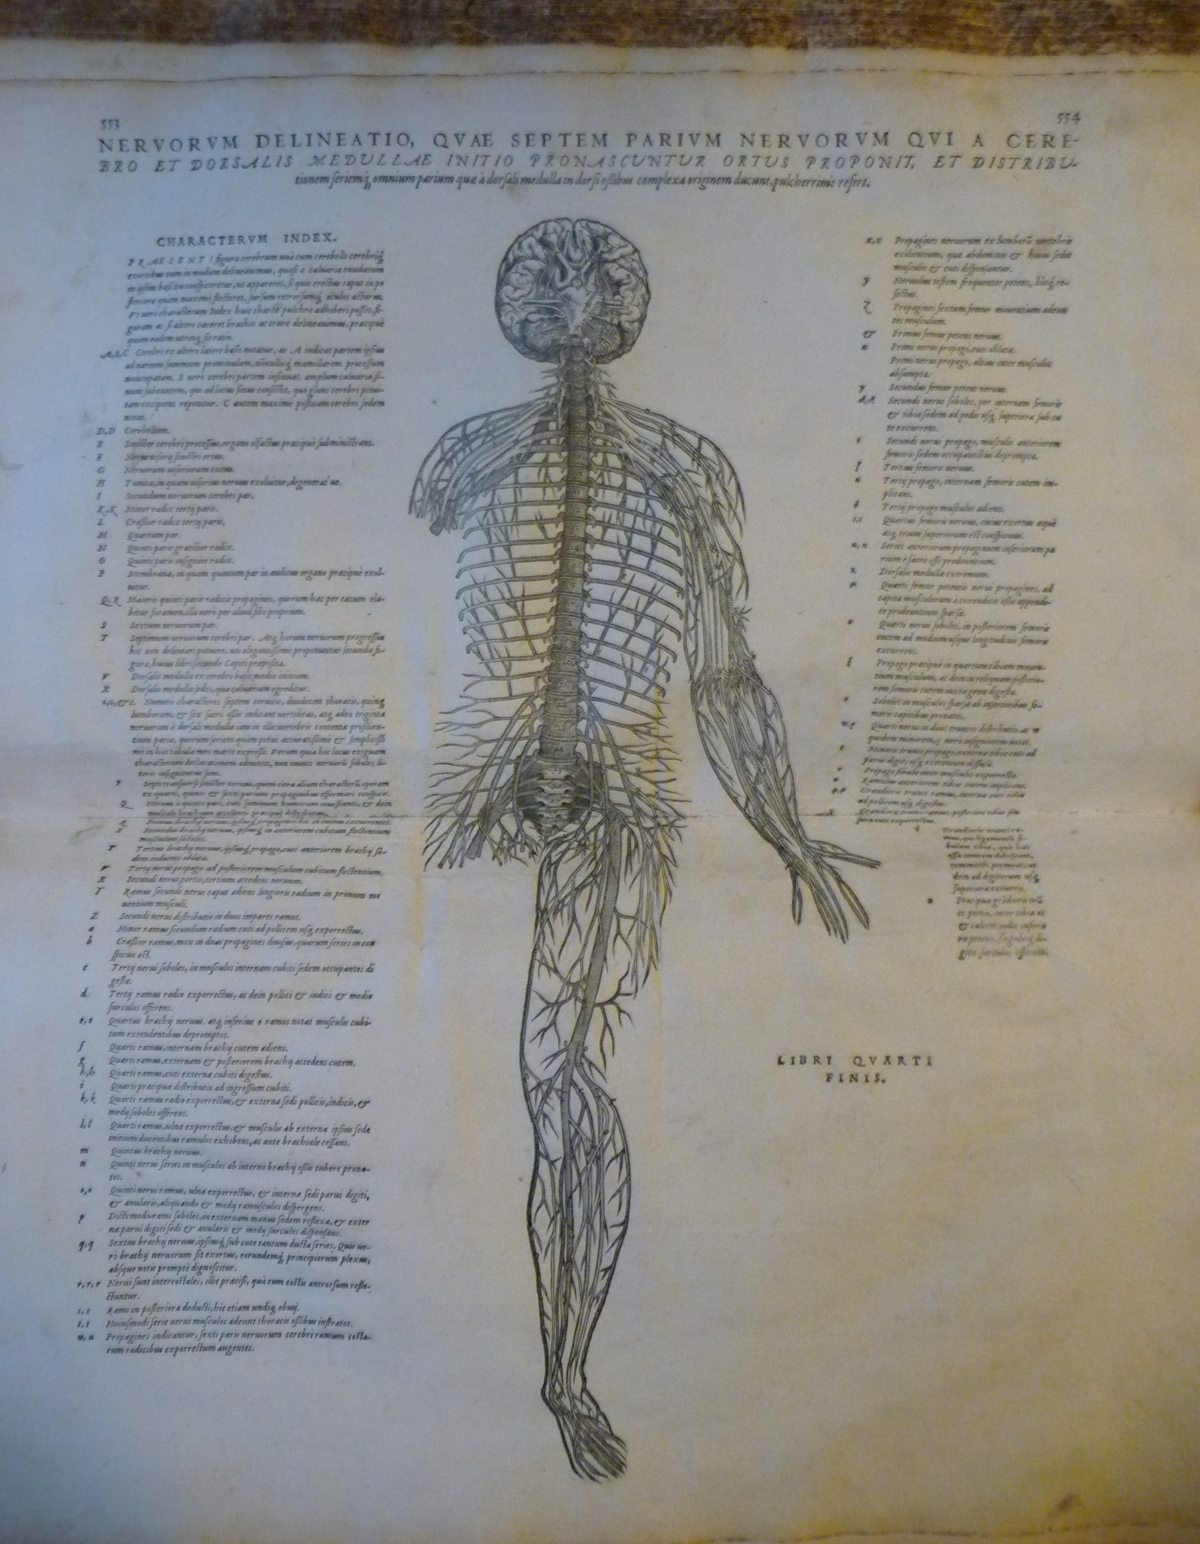 A page from 'De humani corporis fabrica' (The fabric of the human body) by Andreas Vesalius showing an illustration of the nerves in the body.